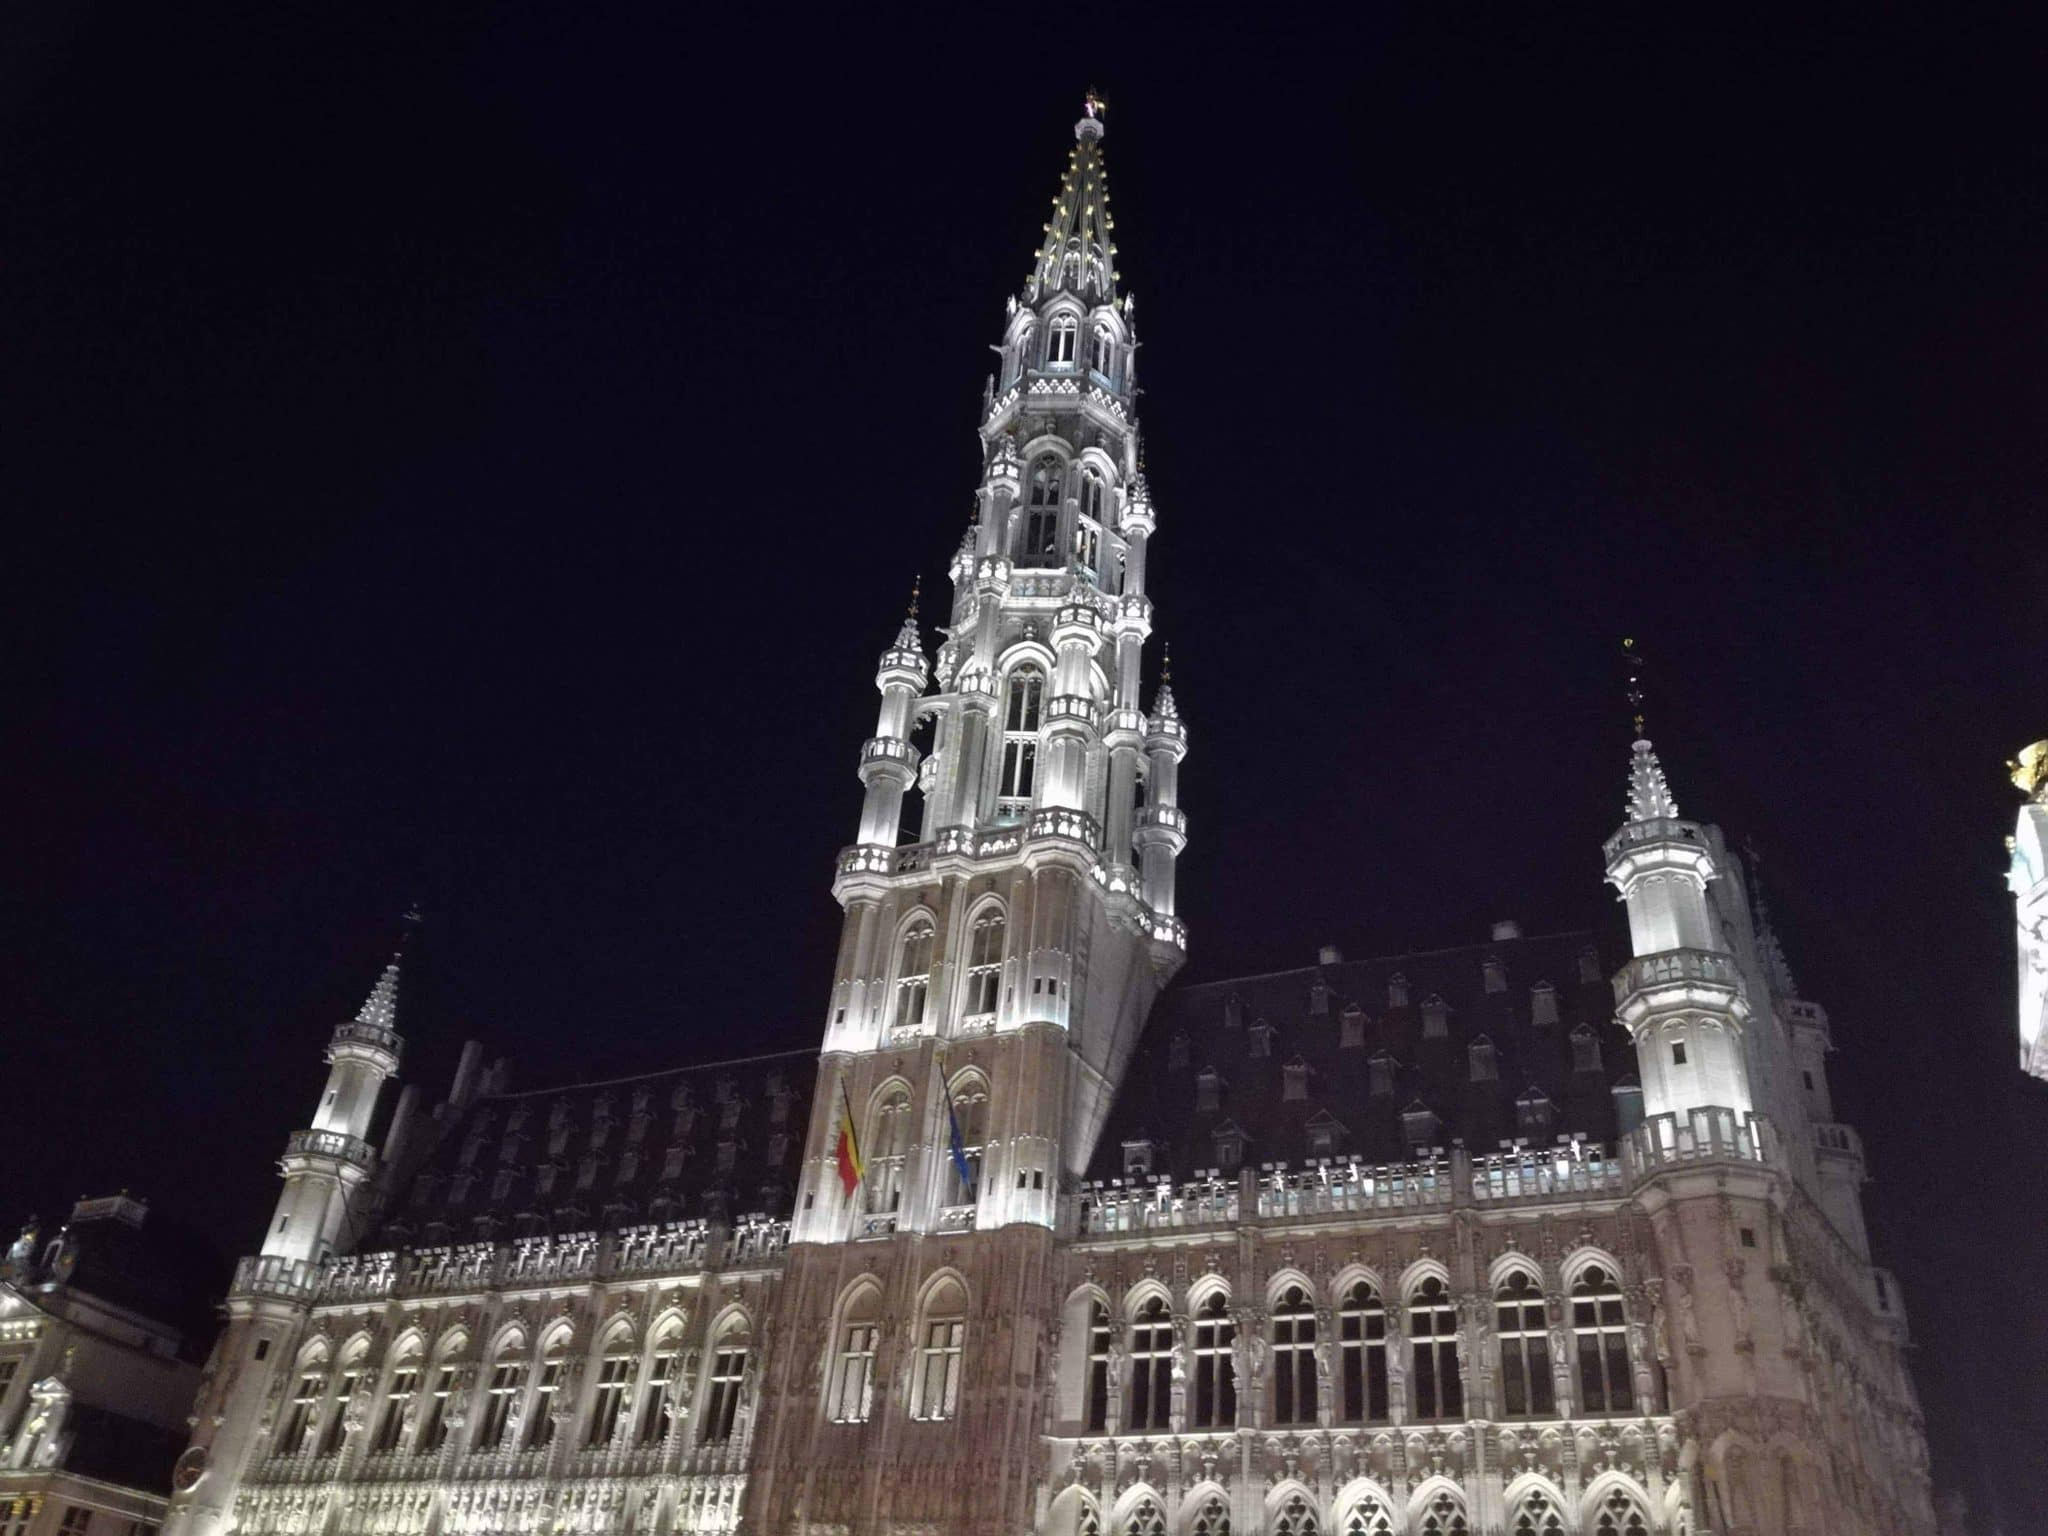 Brussels Grand Plaza in the night